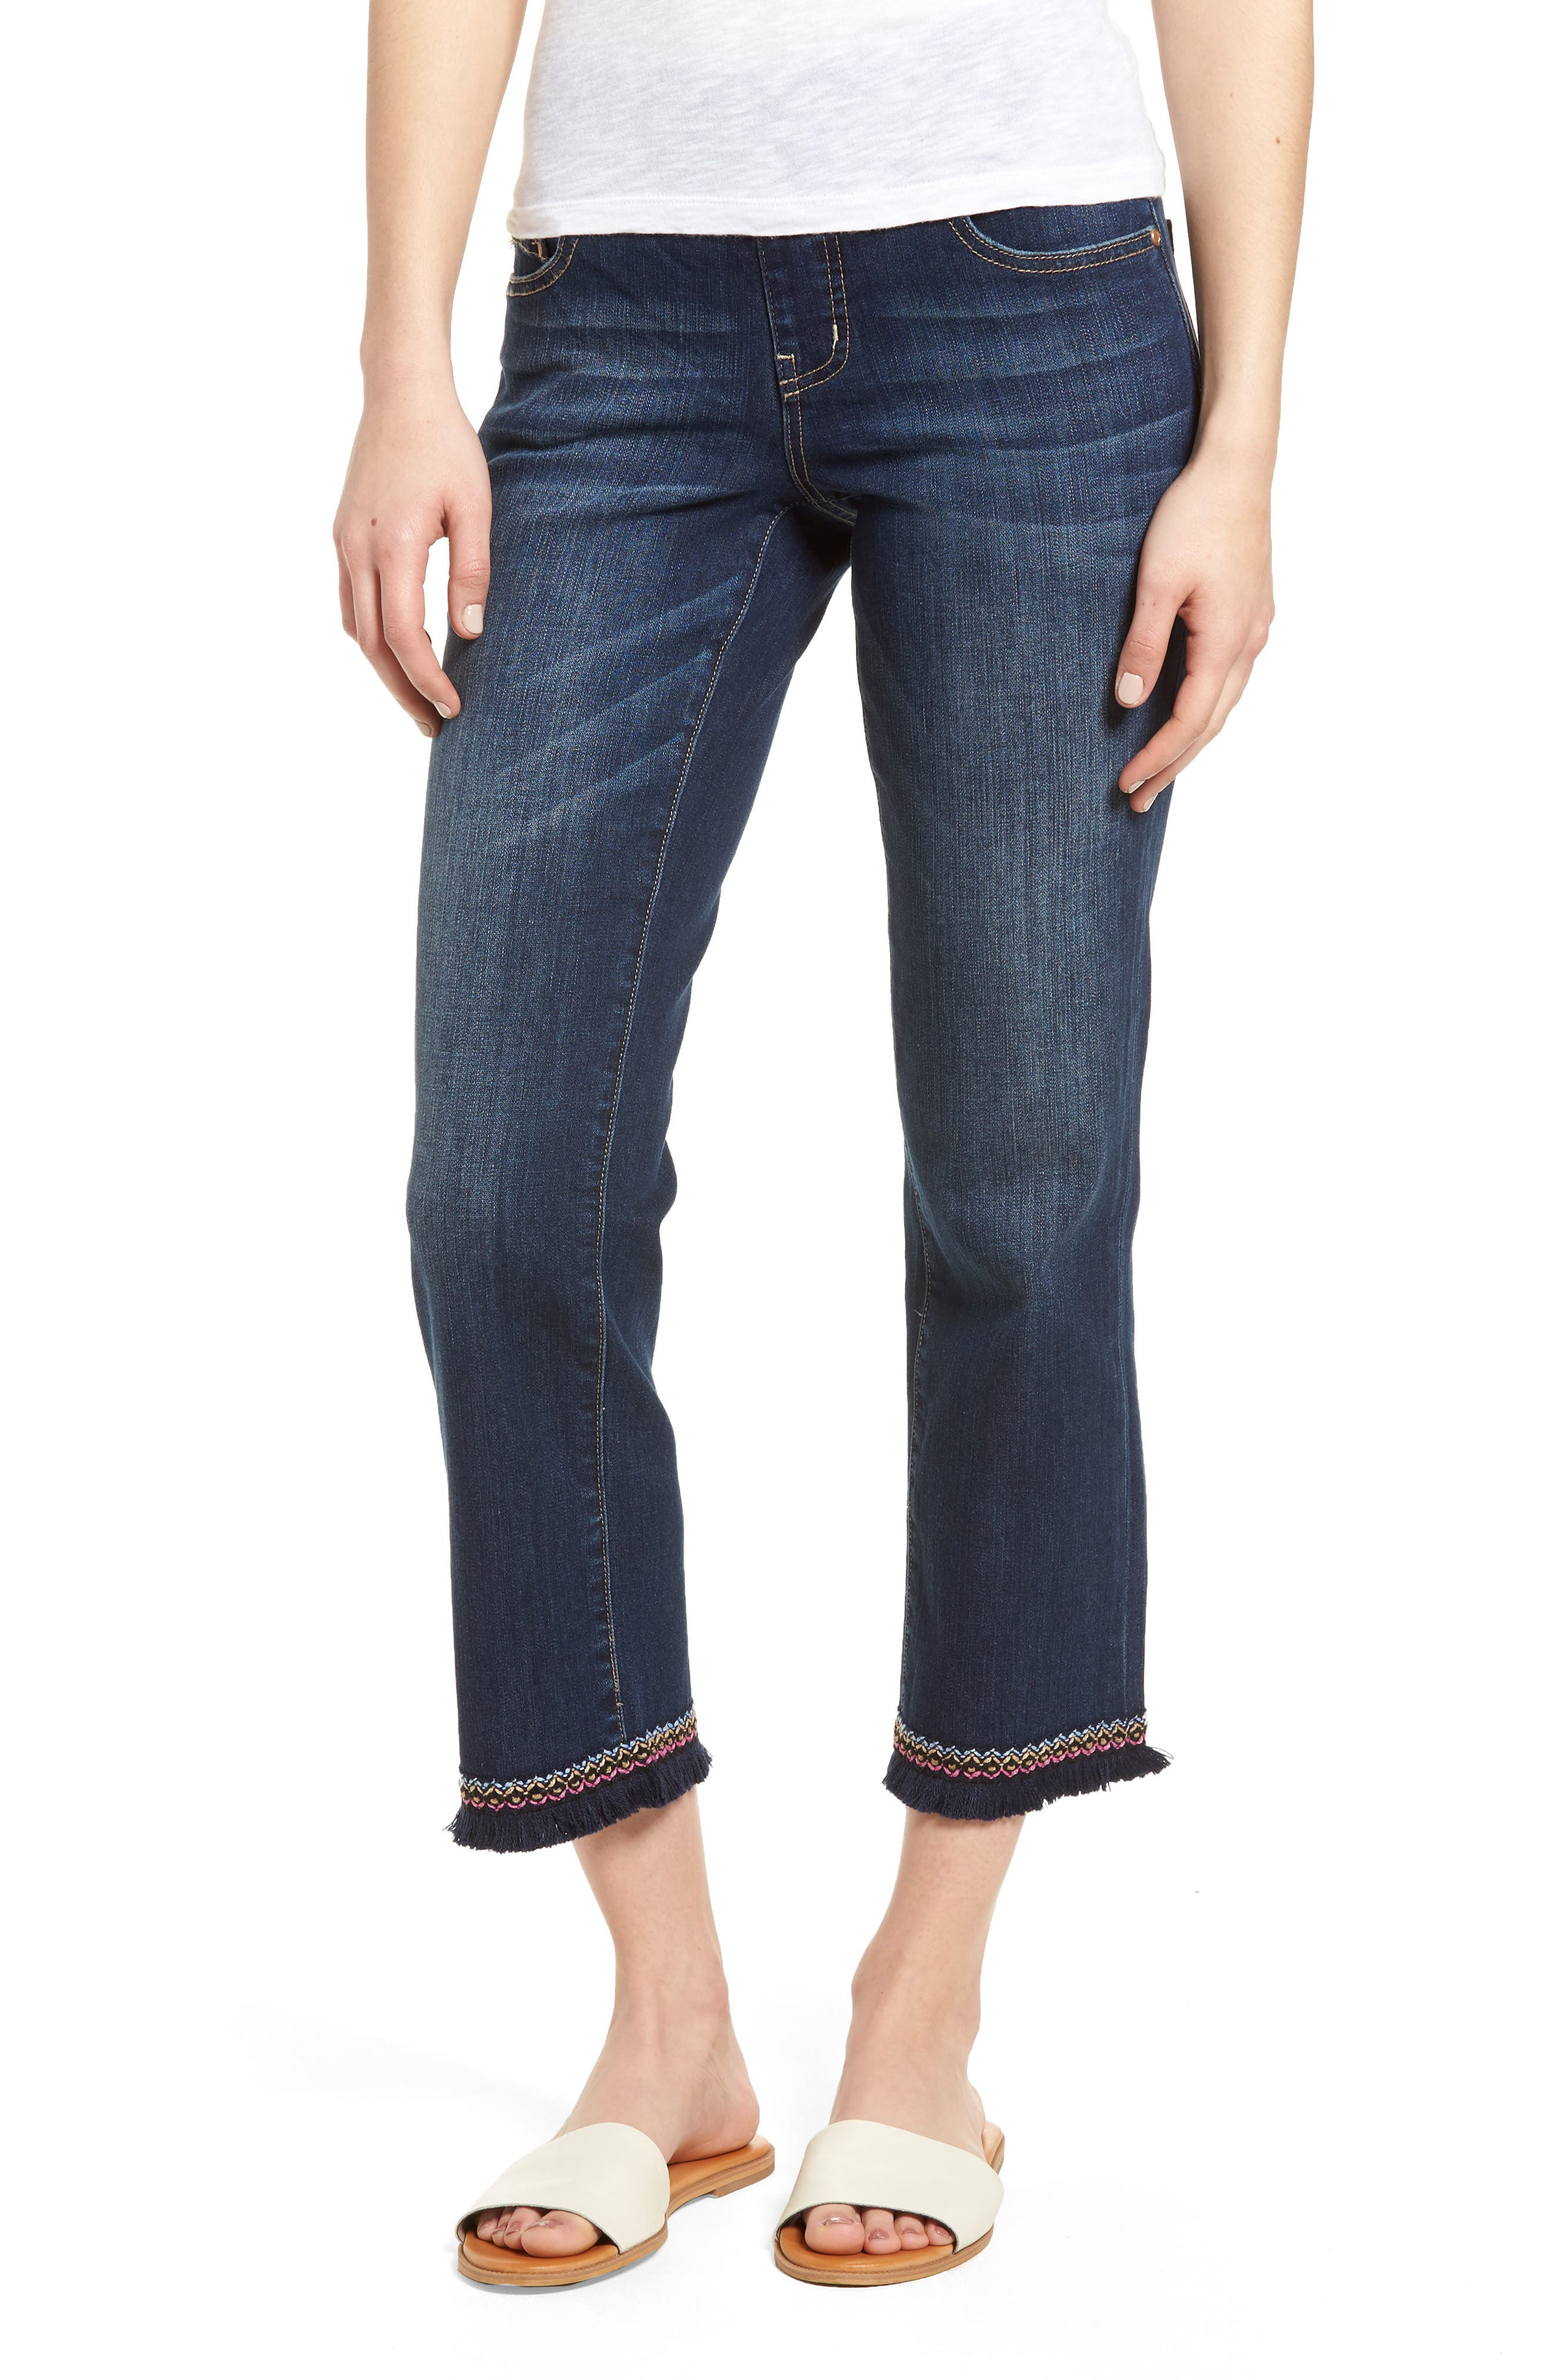 Peri Embroidery Fringe Jeans,                             Main thumbnail 1, color,                             Med Indigo